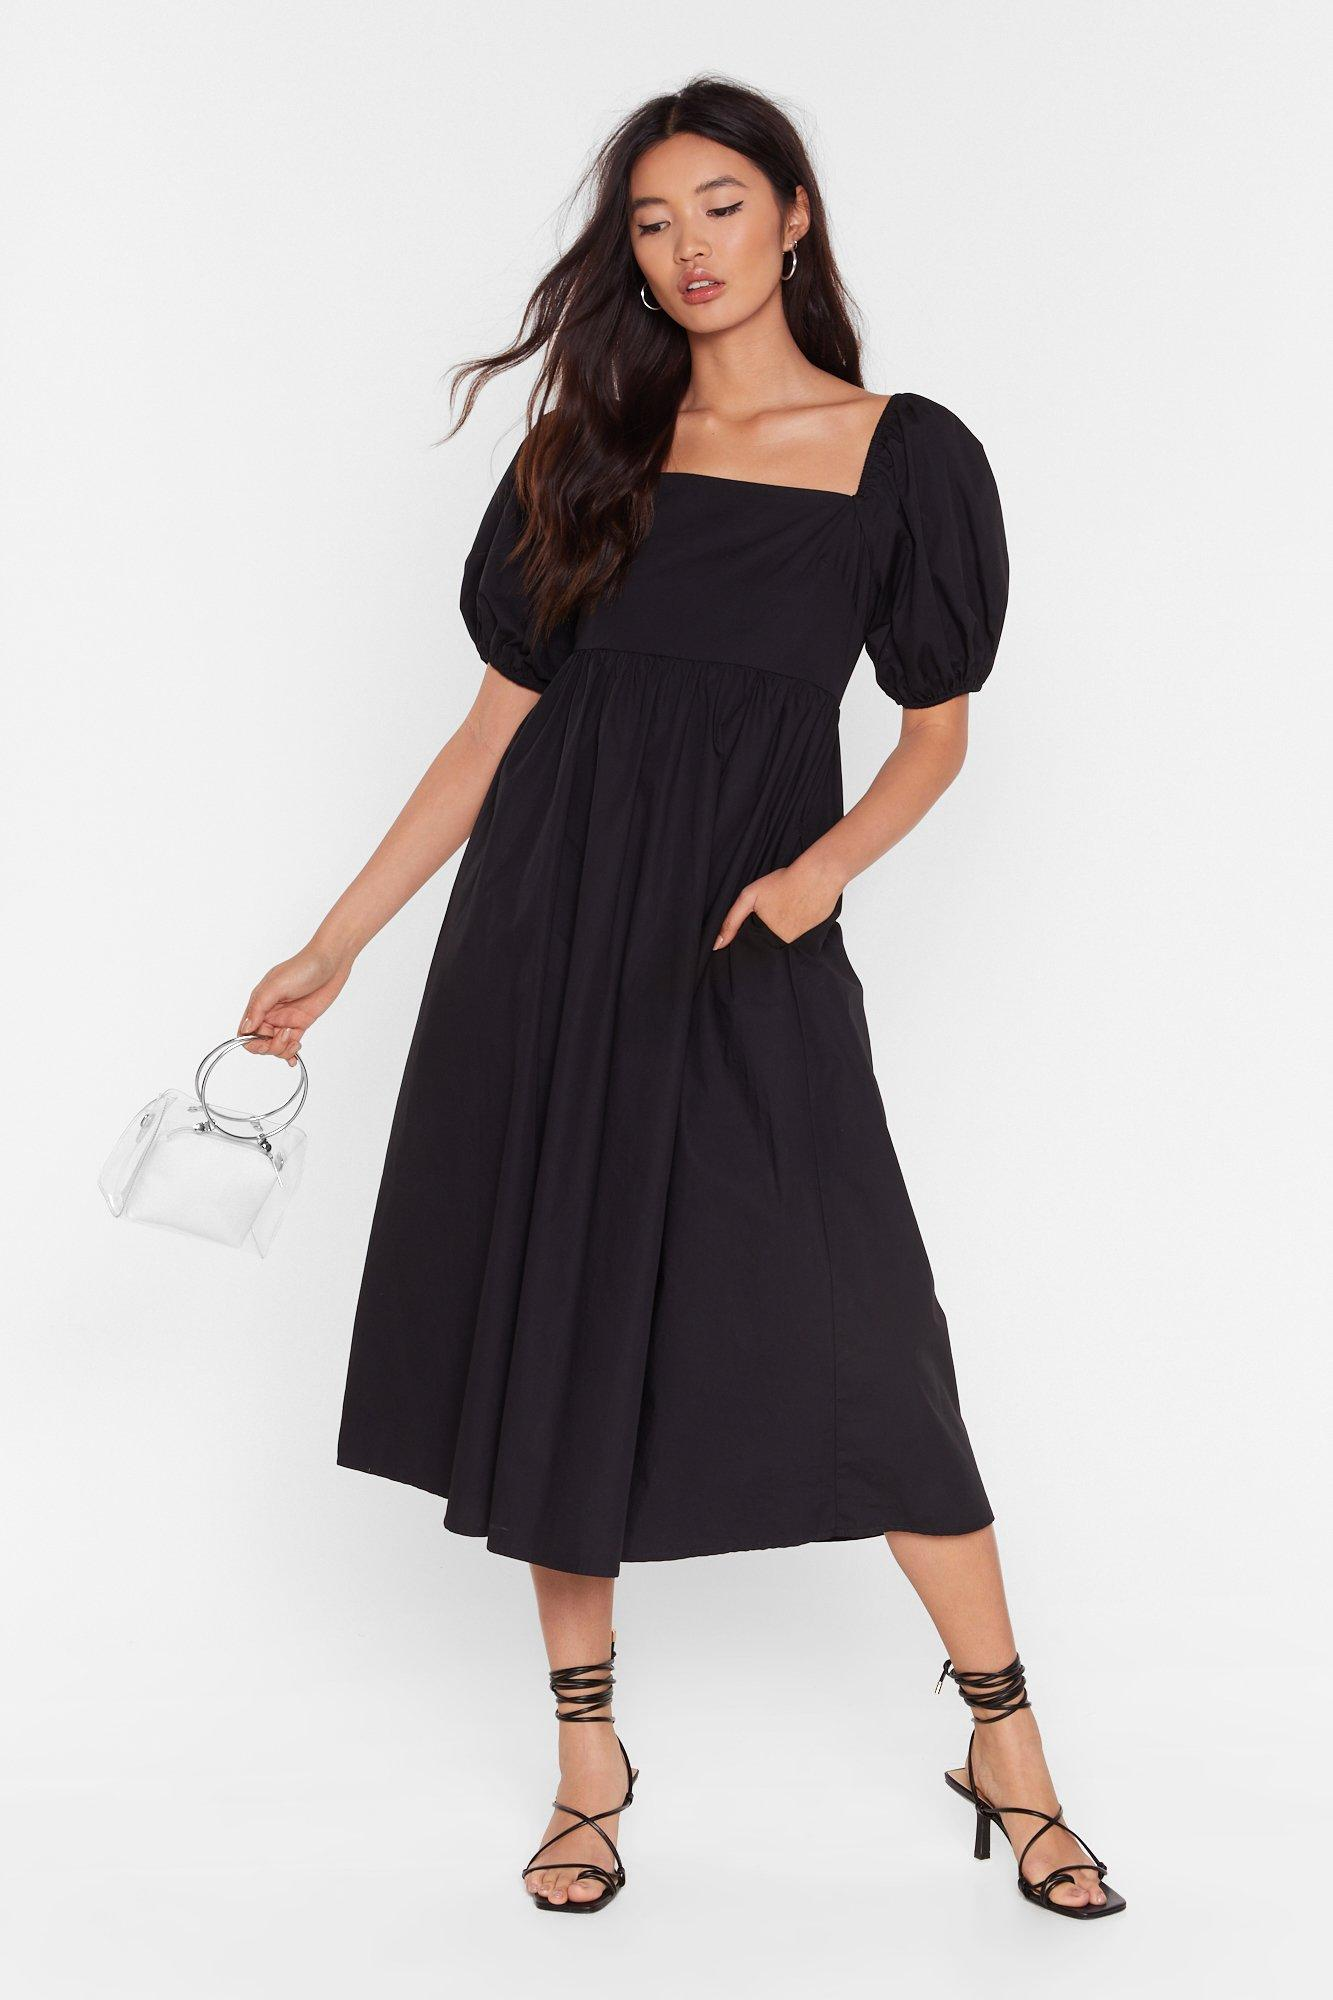 Image of Who Square's Who Wins Puff Sleeve Midi Dress